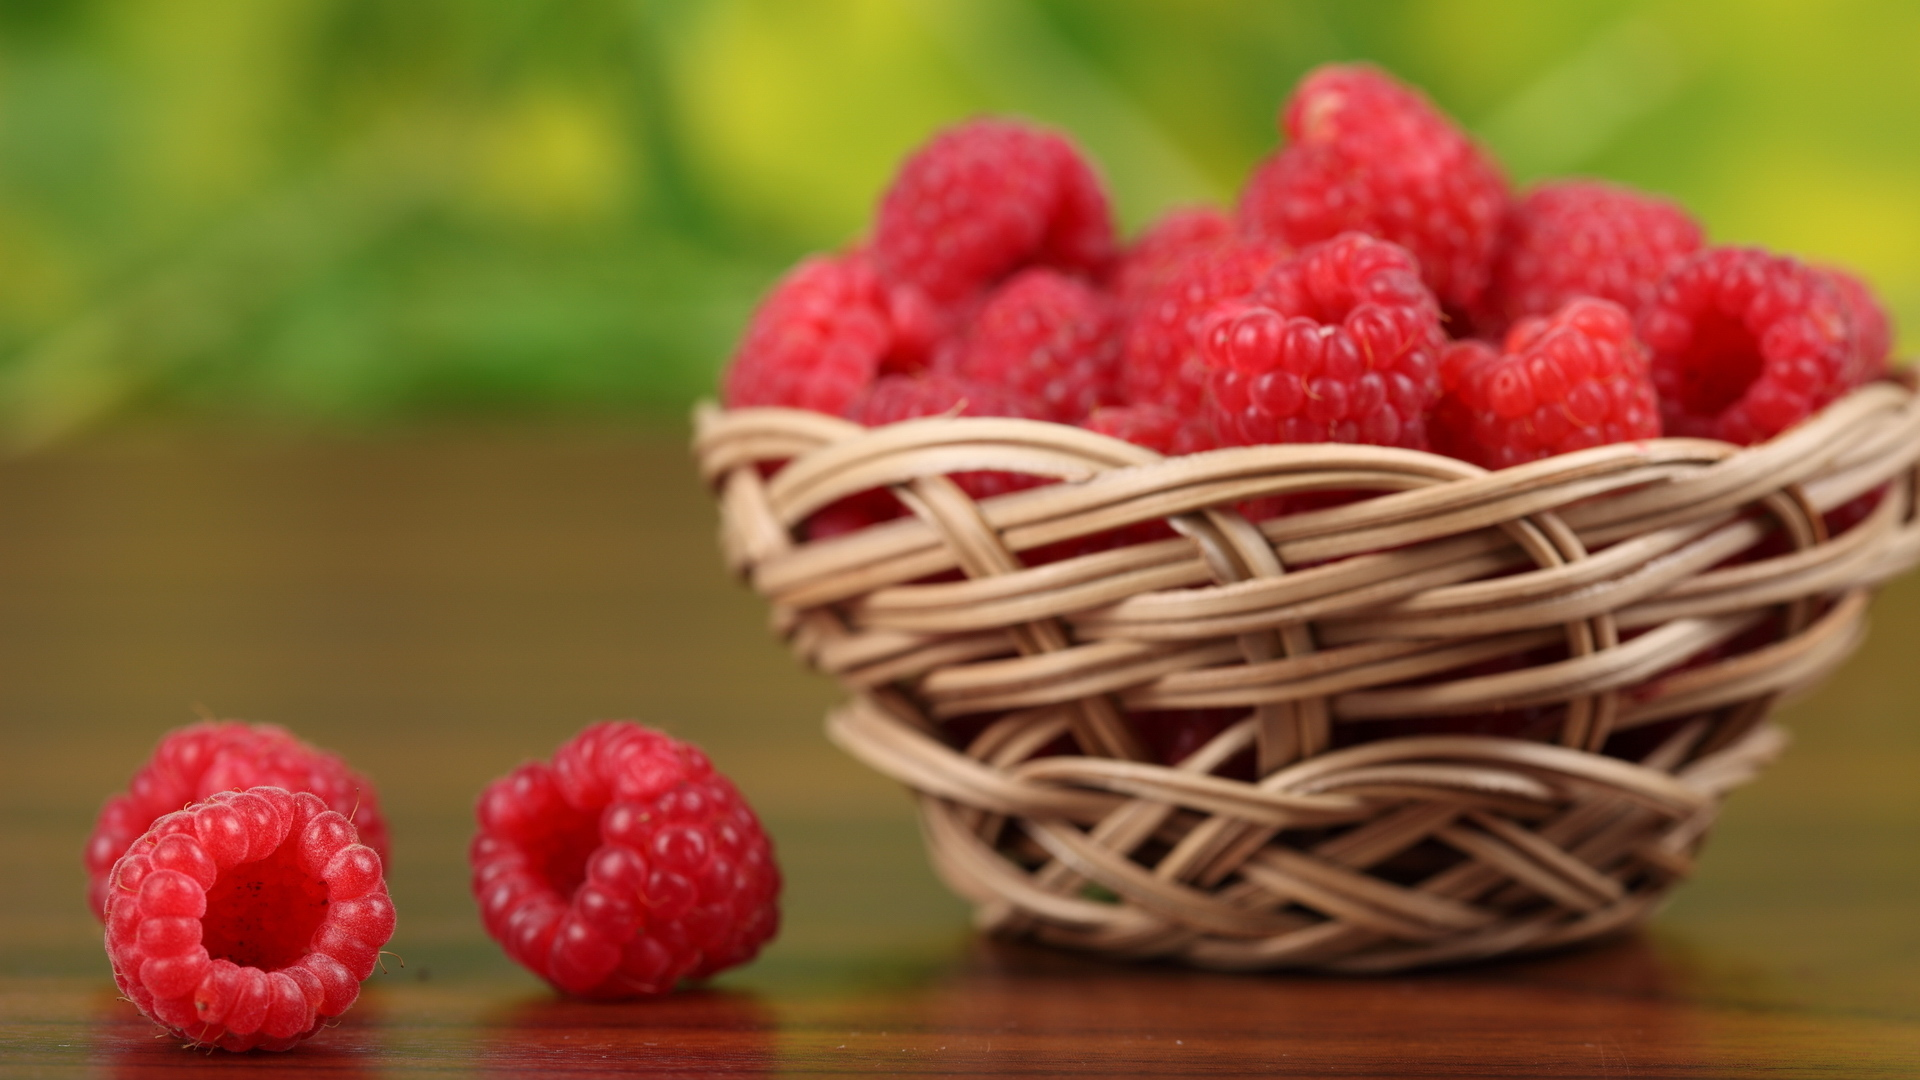 еда малина природа food raspberry nature смотреть